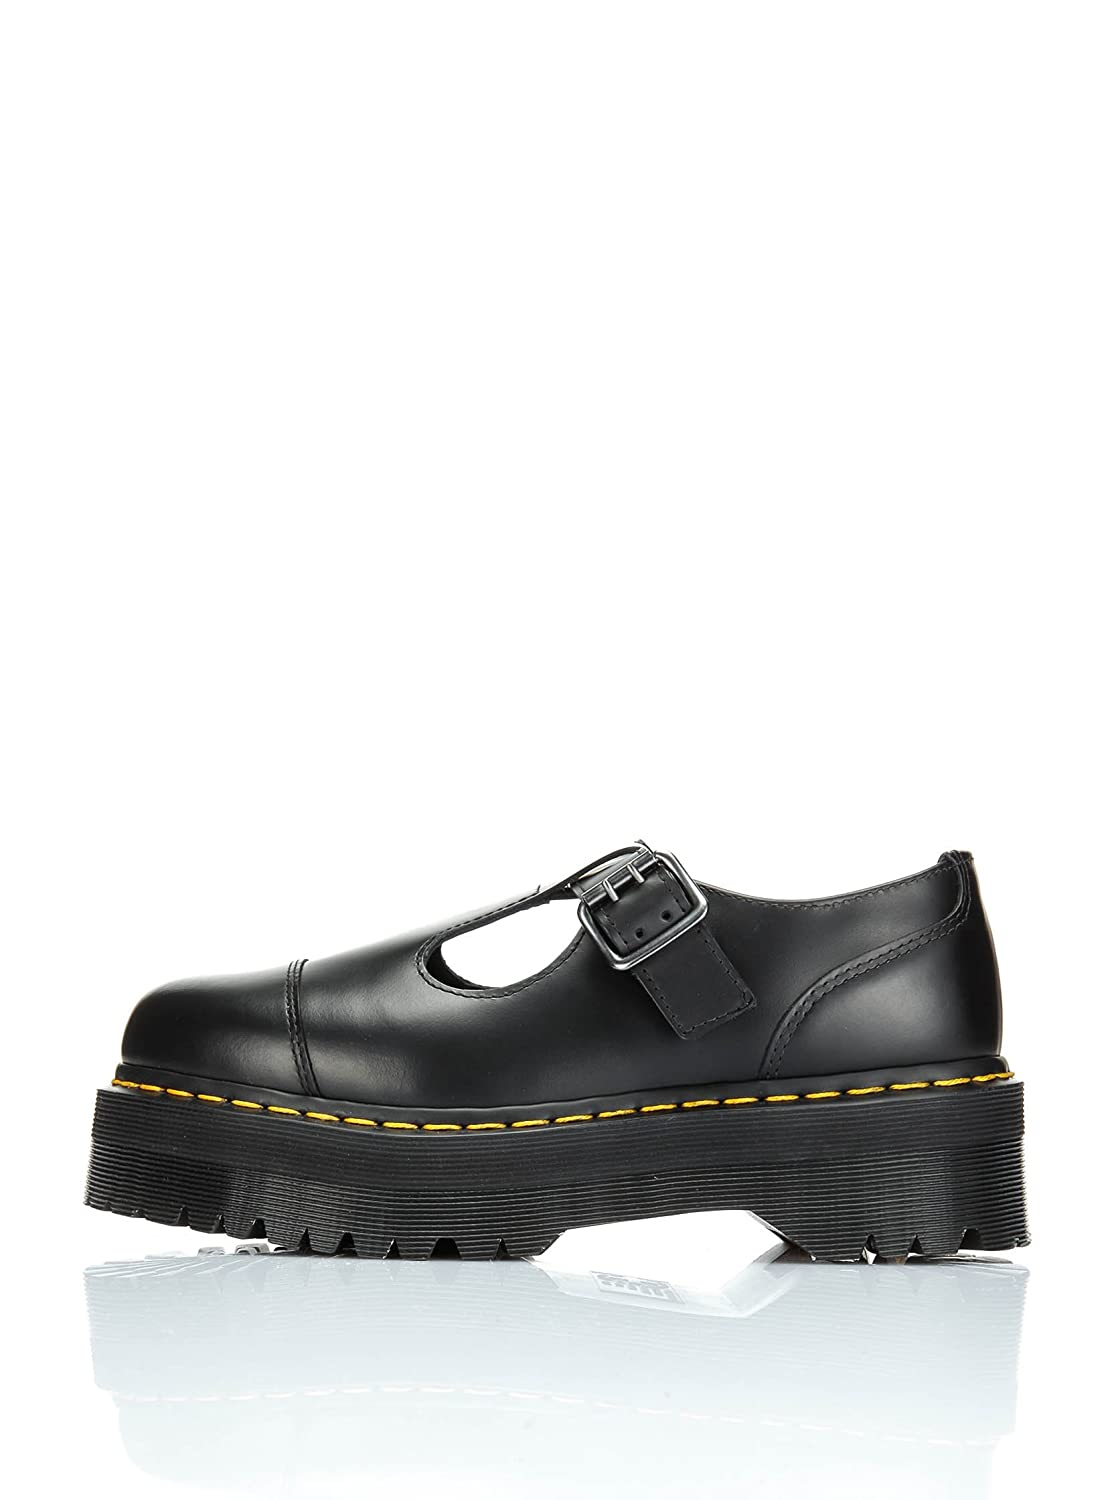 f43e0e73886 Dr. Martens Women T-Bar Bethan Mary Jane Black US 8.5 EU 40 UK 6.5   Amazon.ca  Shoes   Handbags